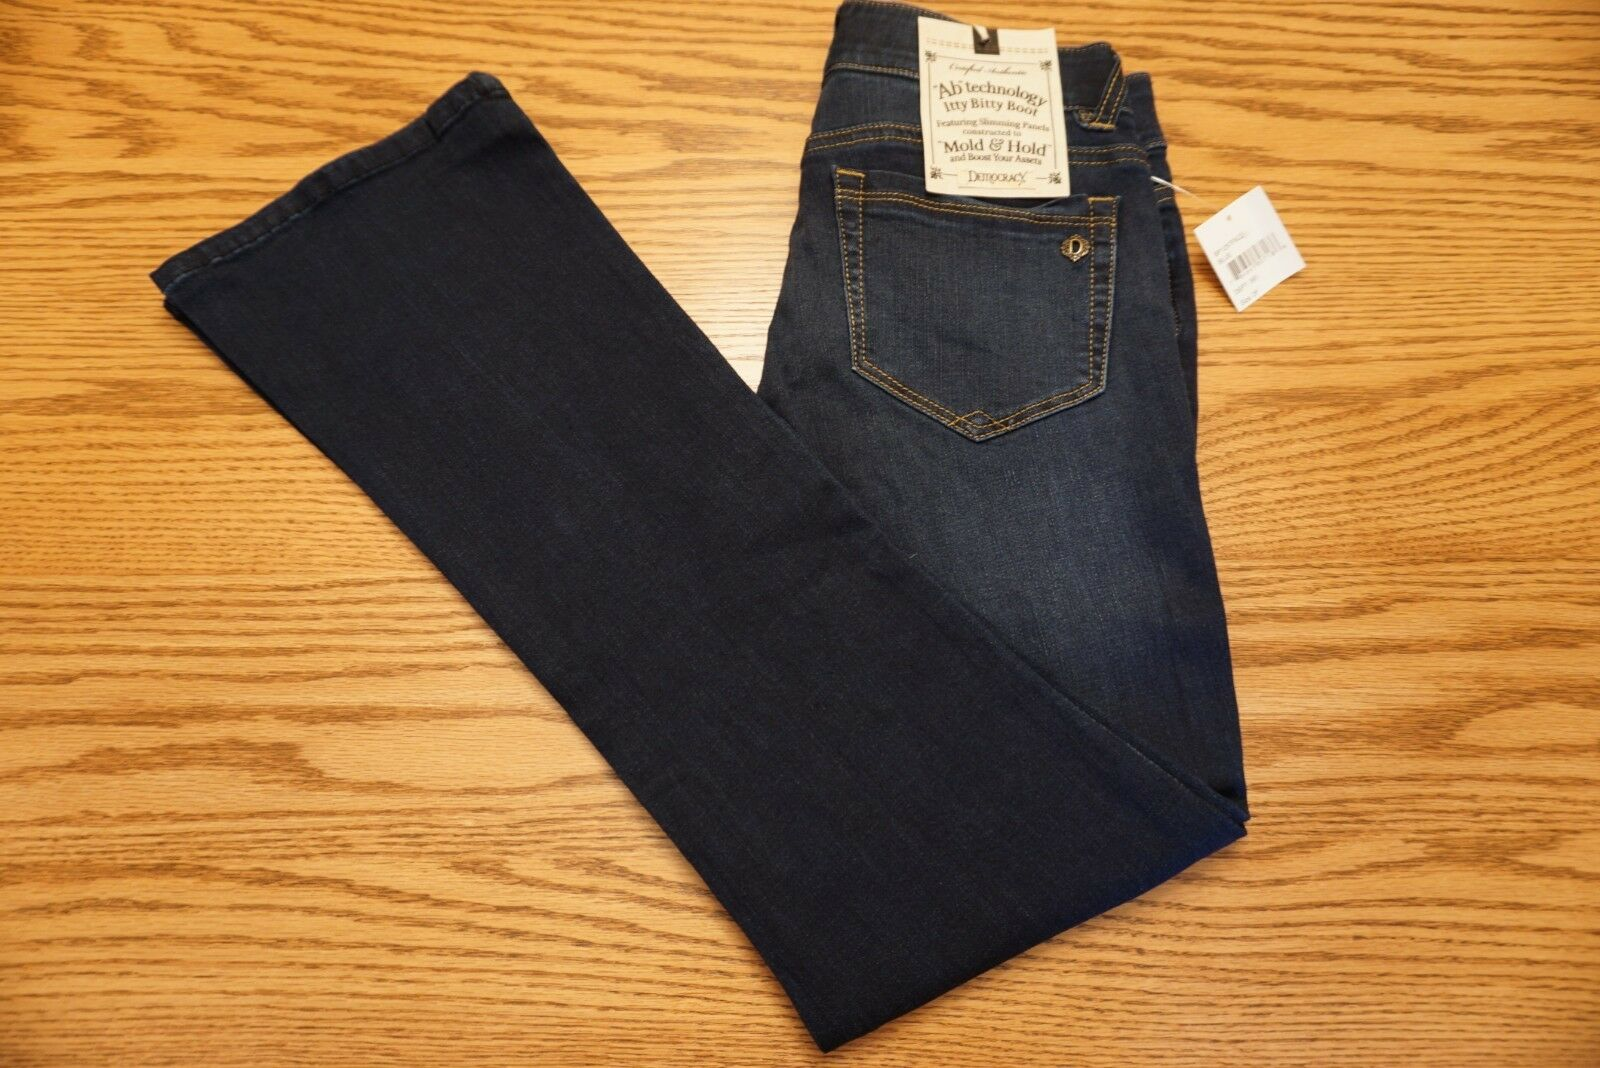 NWT WOMEN'S DEMOCRACY JEANS Multiple Sizes Petite Itty Bitty